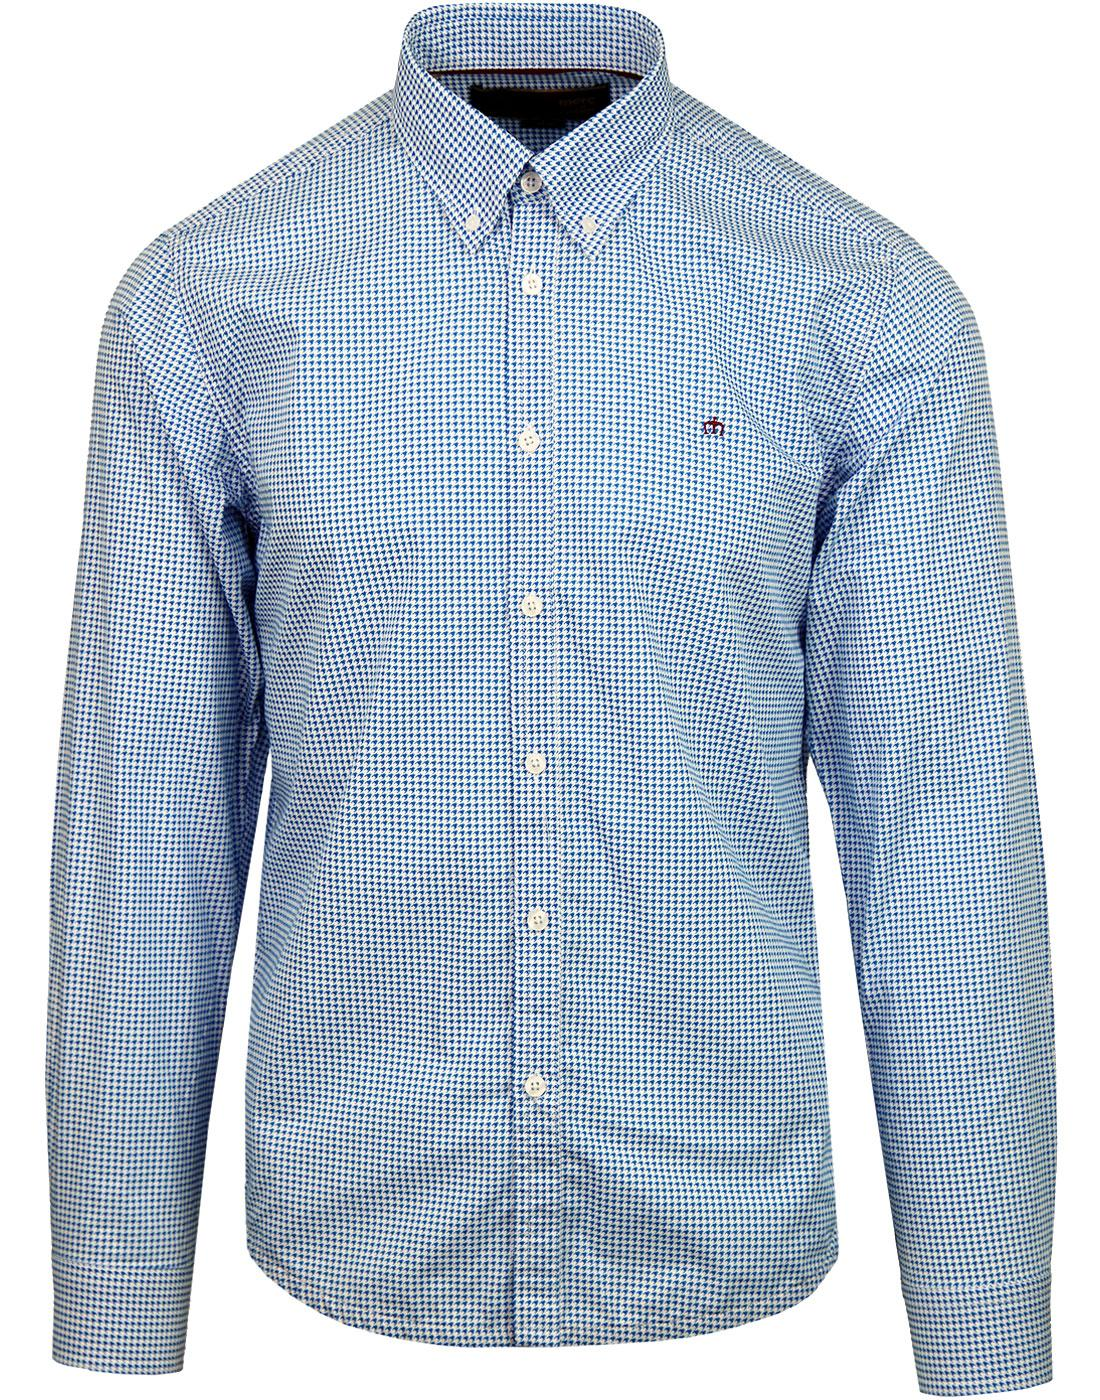 Shooter MERC Retro 2-Tone Mod Dogtooth Shirt BLUE